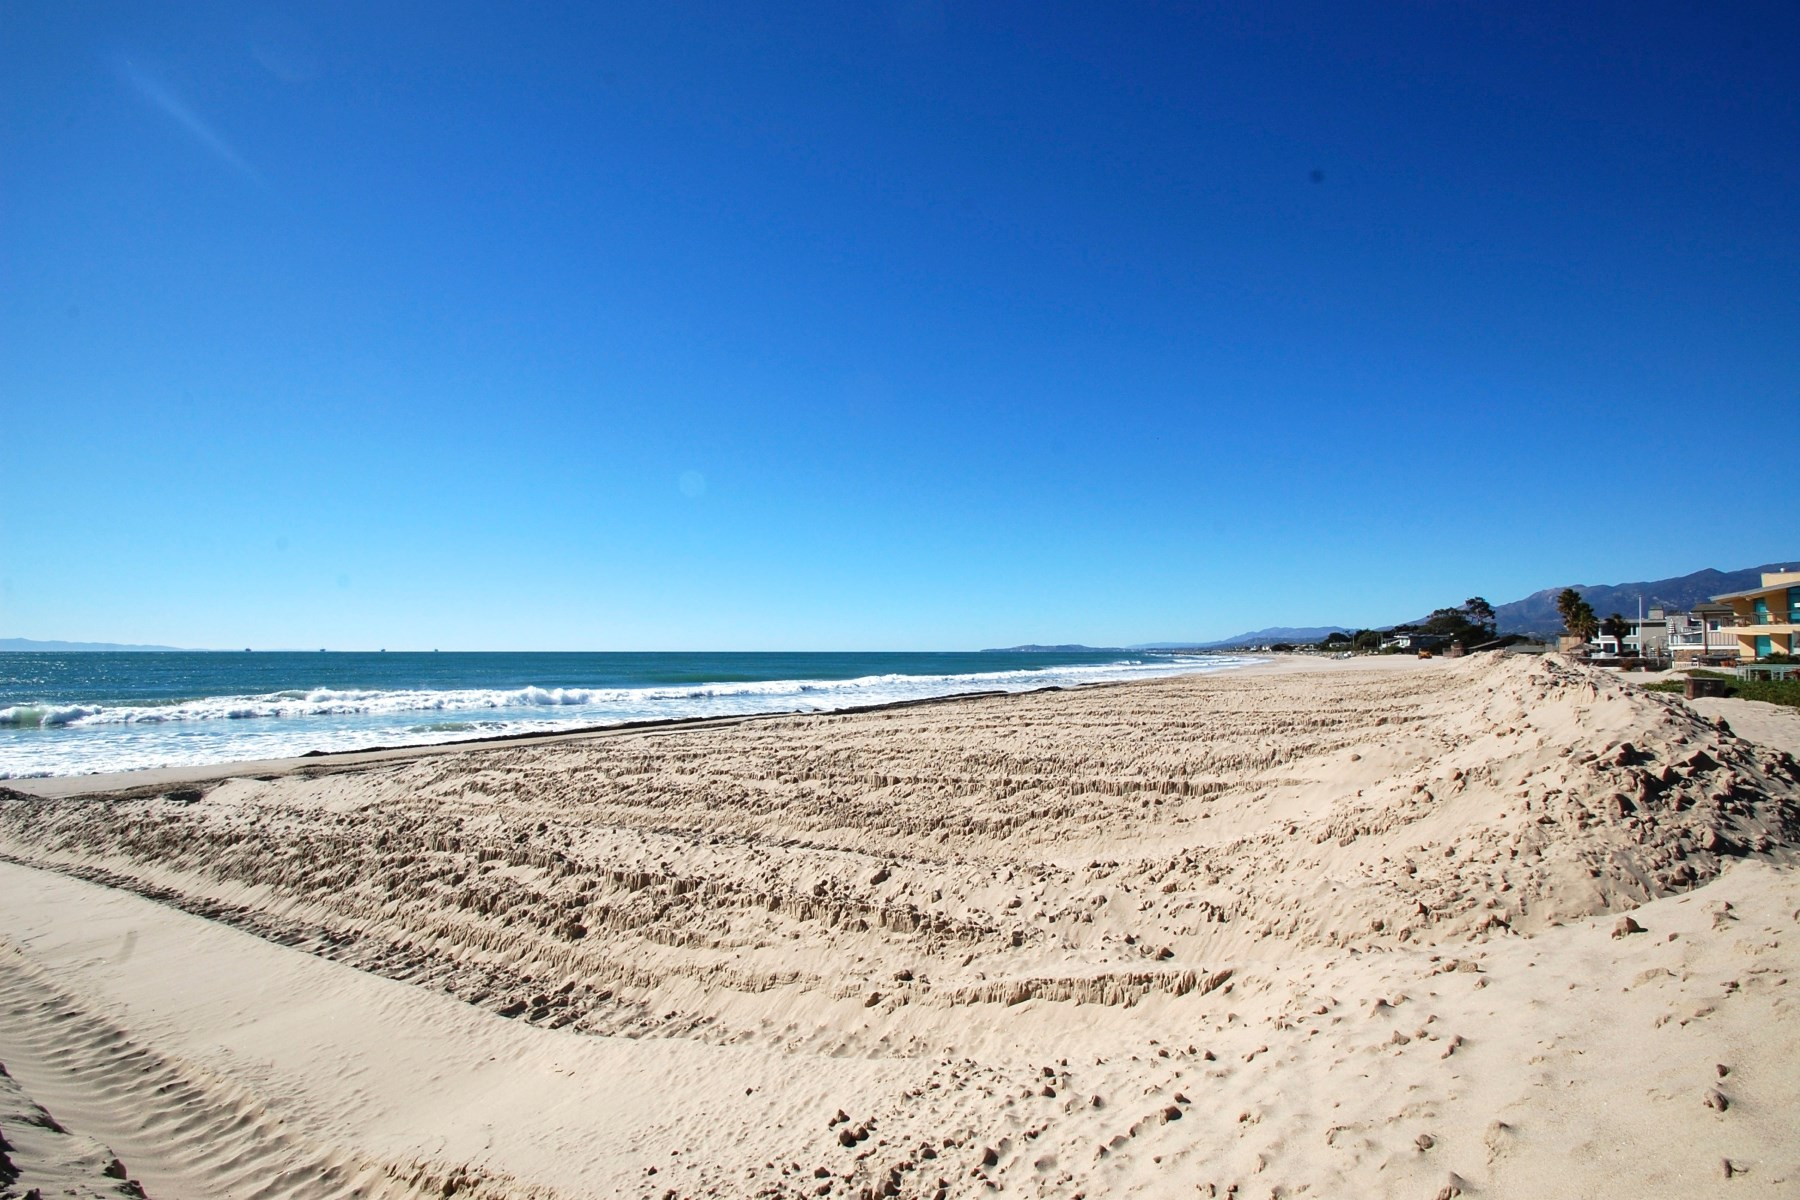 Condominium for Sale at Carpinteria Beach Area Condo 4902 Sandyland Rd. #241 Carpinteria, California, 93013 United States